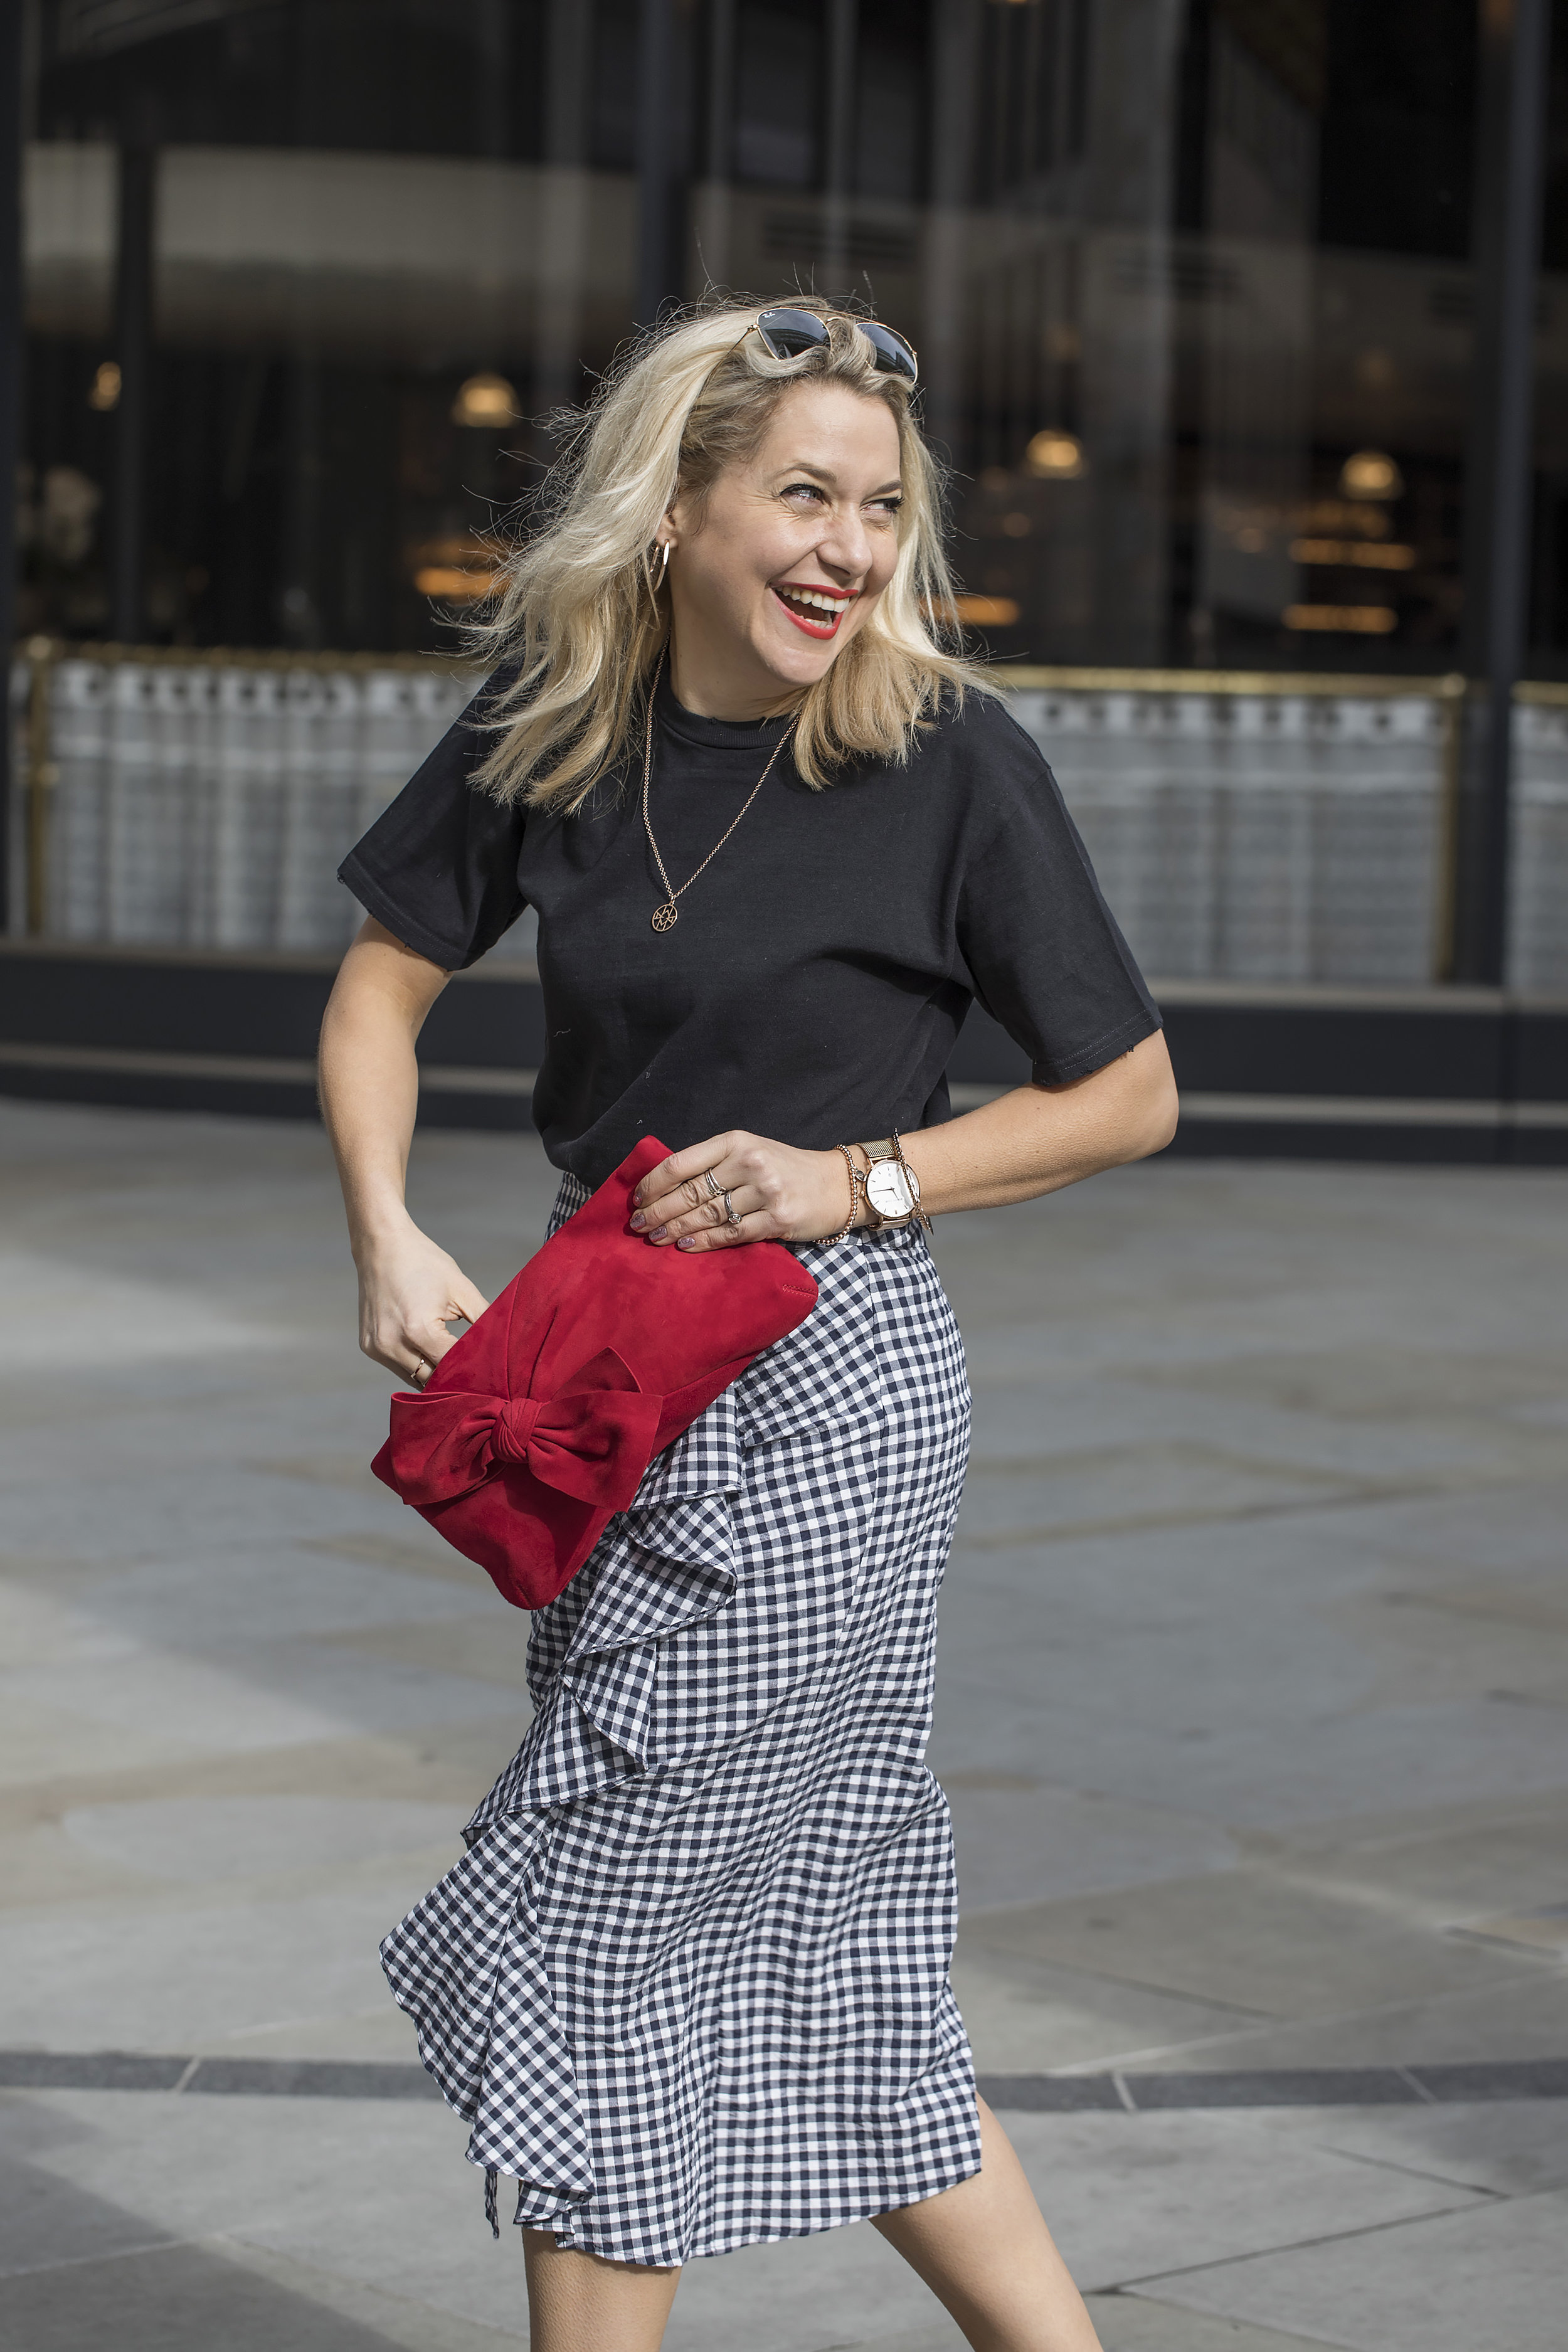 833c0131cc Gingham Ruffle Midi Skirt £39 /Asymmetric Gingham Frill Top £29 / He Loves  Me Blouse by Boutique £60 / MADNESS Studded Boots £72